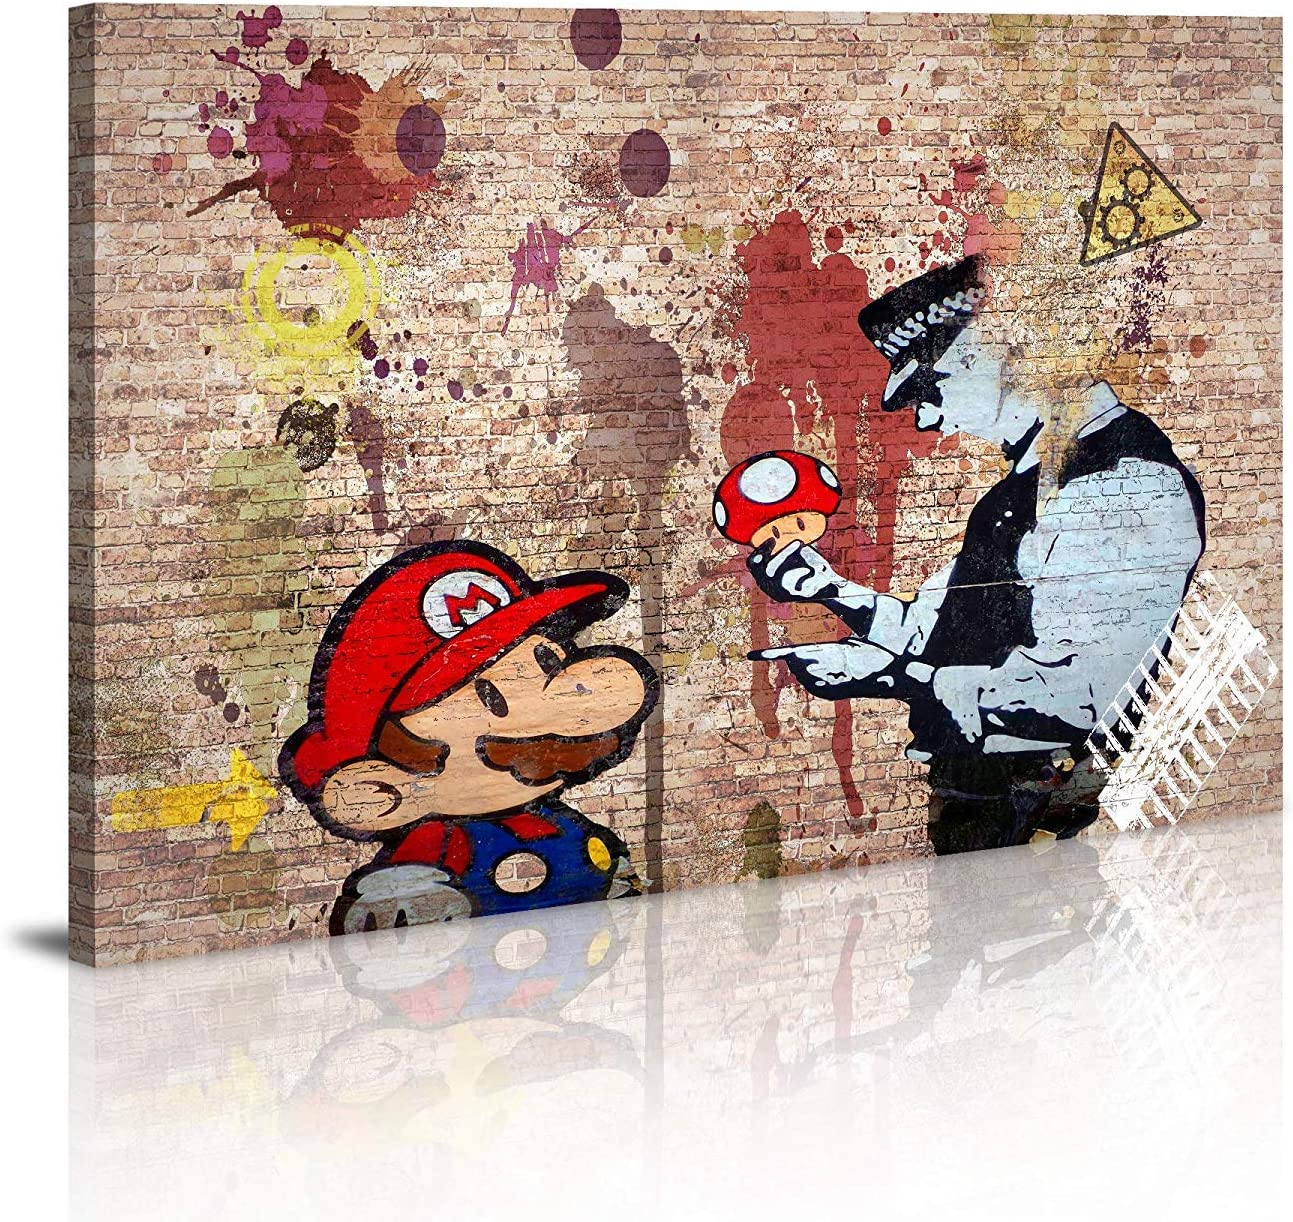 Canvas Prints Framed Wall Art Banksy Art Wall Art for Bedroom Artwork Colorful Figure Street Graffiti Wall Decor Pics for Living Room Decor Ready to Hang